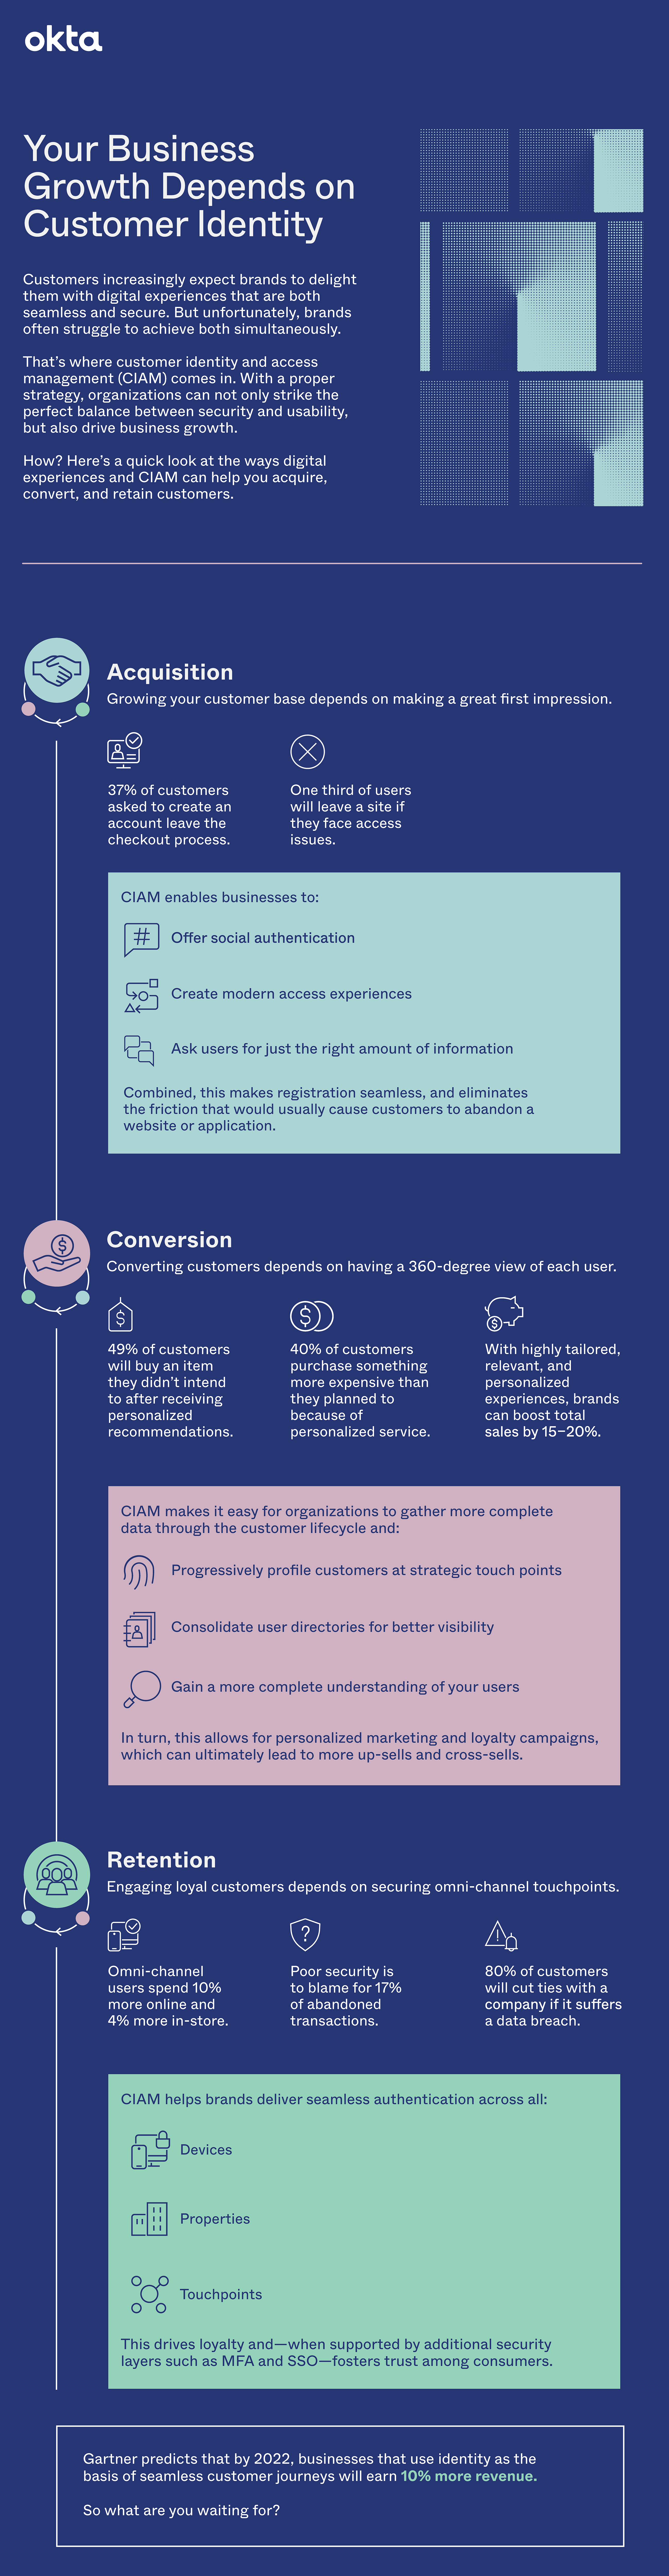 Infographic: Your Business Growth Depends on Customer Identity